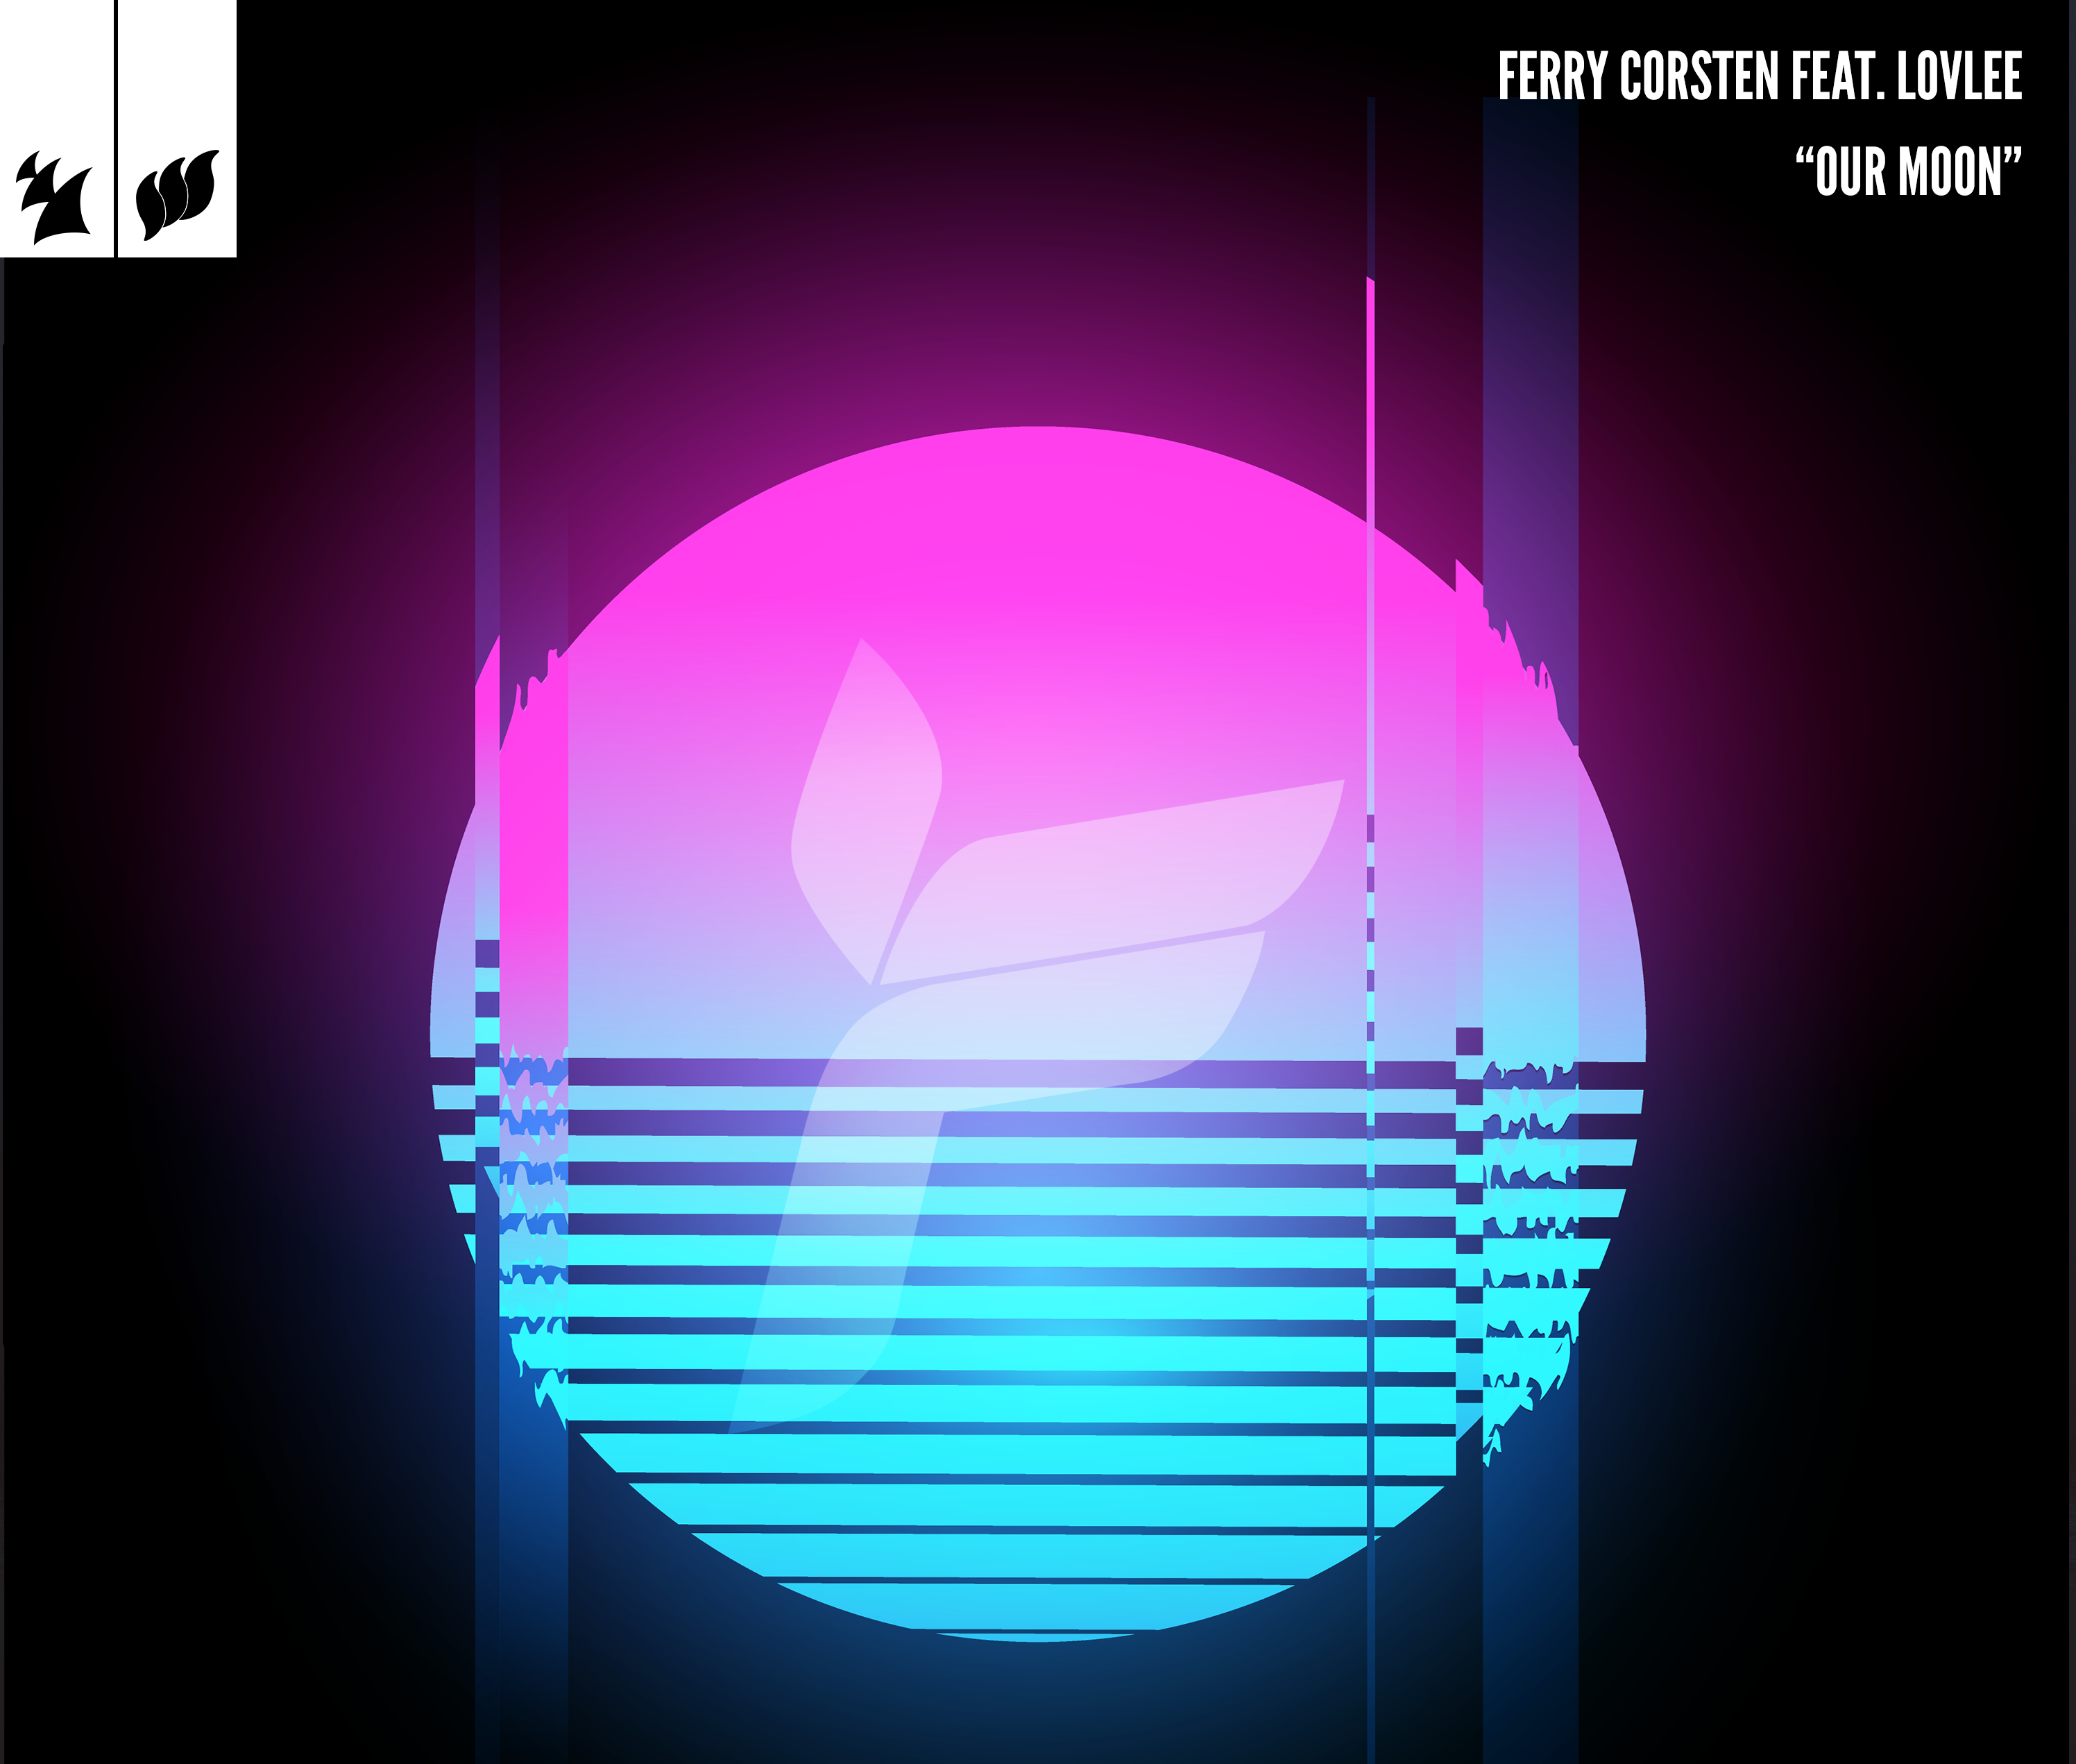 New track 'Our Moon' by Ferry Corsten feat. Lovlee